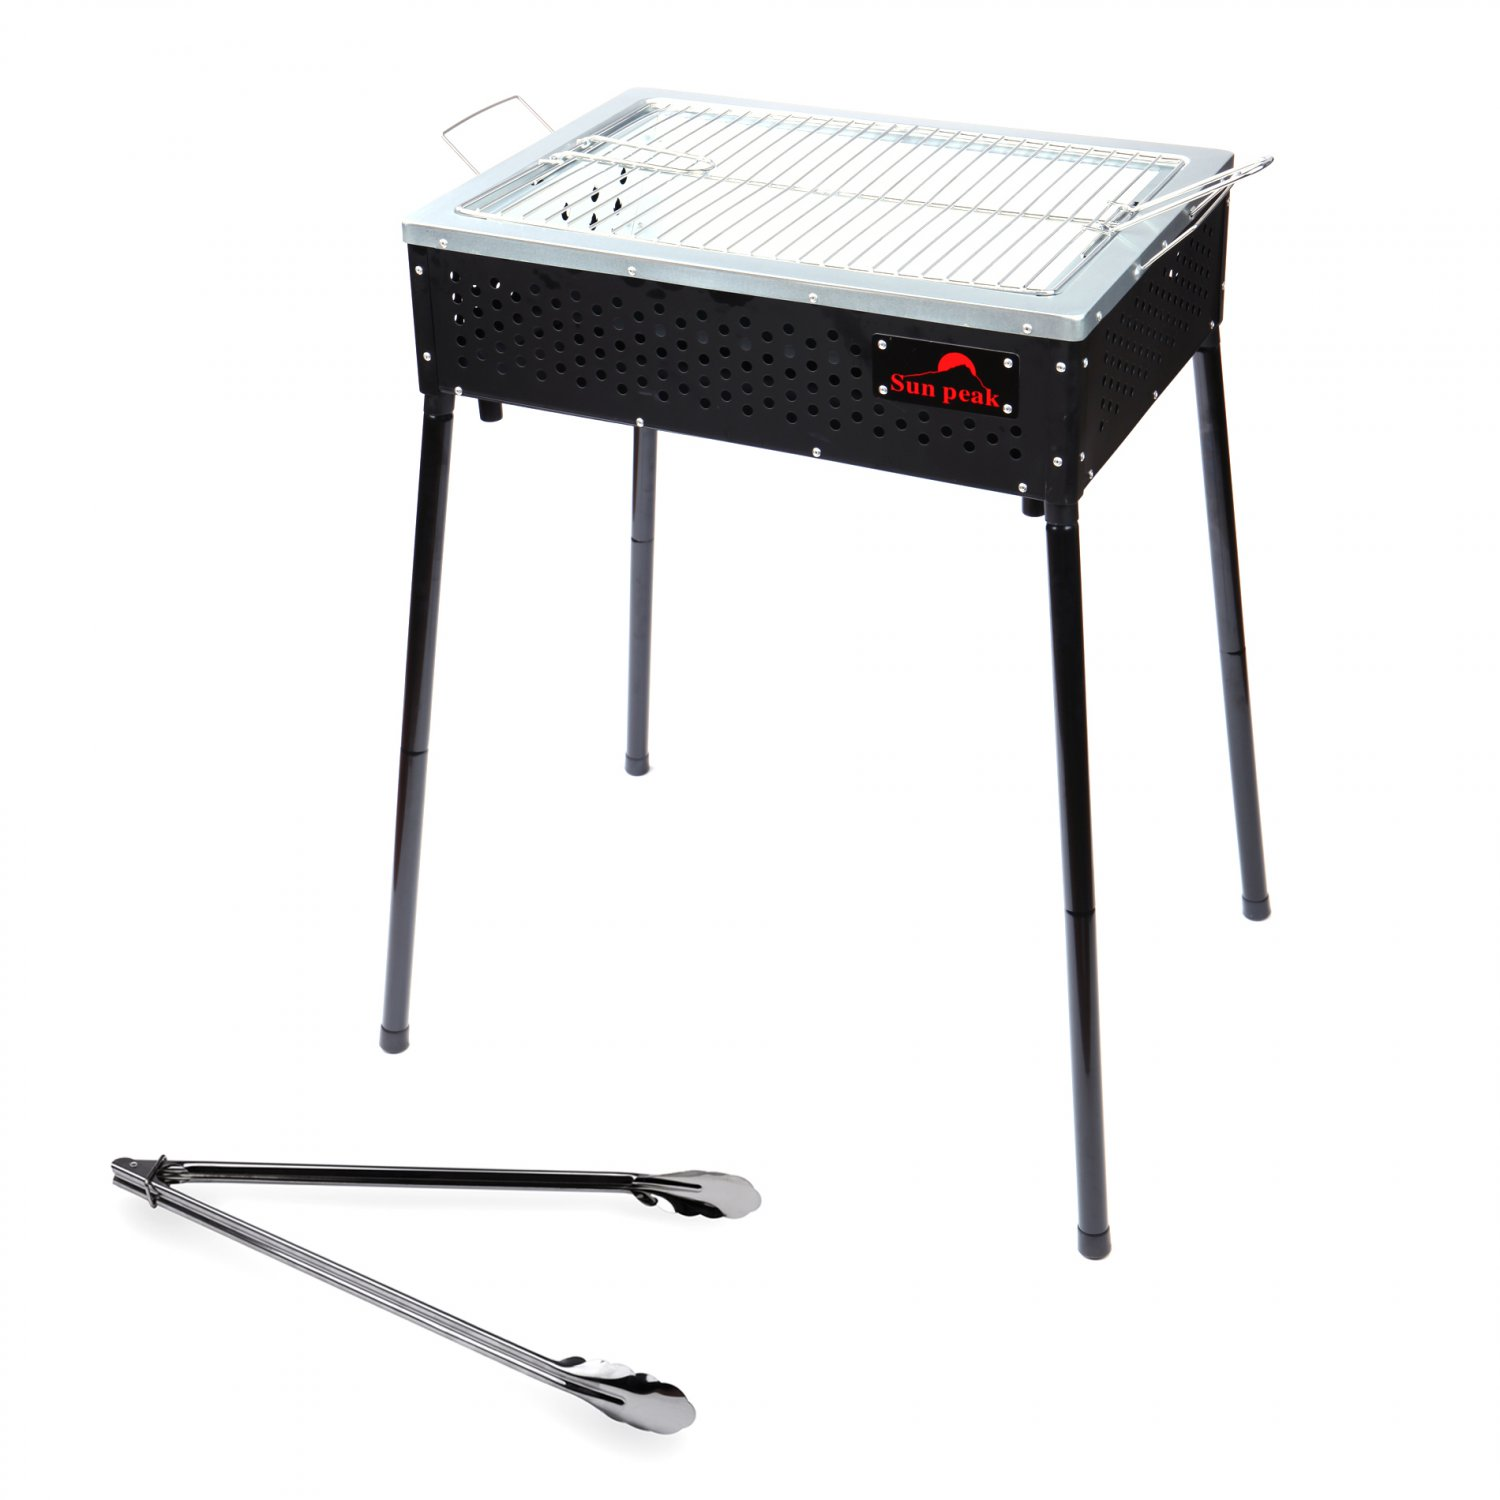 "Foldable Camp 20"" Medium Size BBQ Charcoal Grill Black+BBQ Tong(Ship US Only)SK-17135-BK+SK-17167{4}"